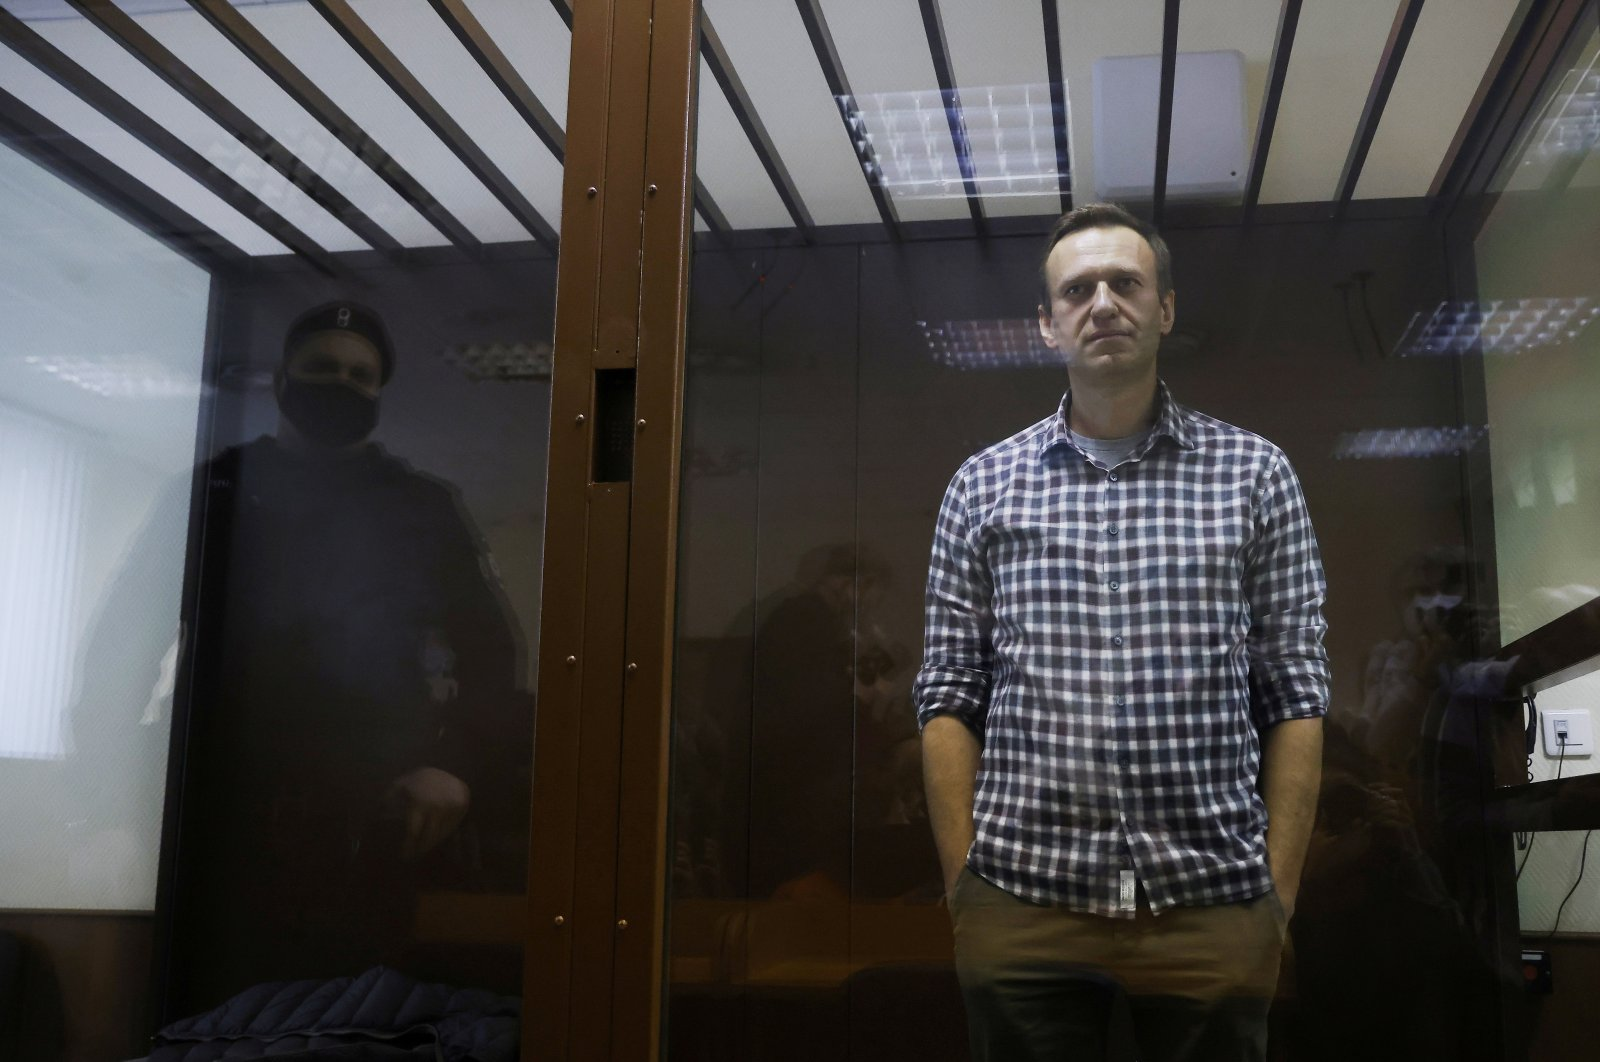 Russian opposition politician Alexei Navalny attends a hearing to consider an appeal against an earlier court decision to change his suspended sentence to a real prison term, in Moscow, Russia, Feb. 20, 2021. (Reuters Photo)